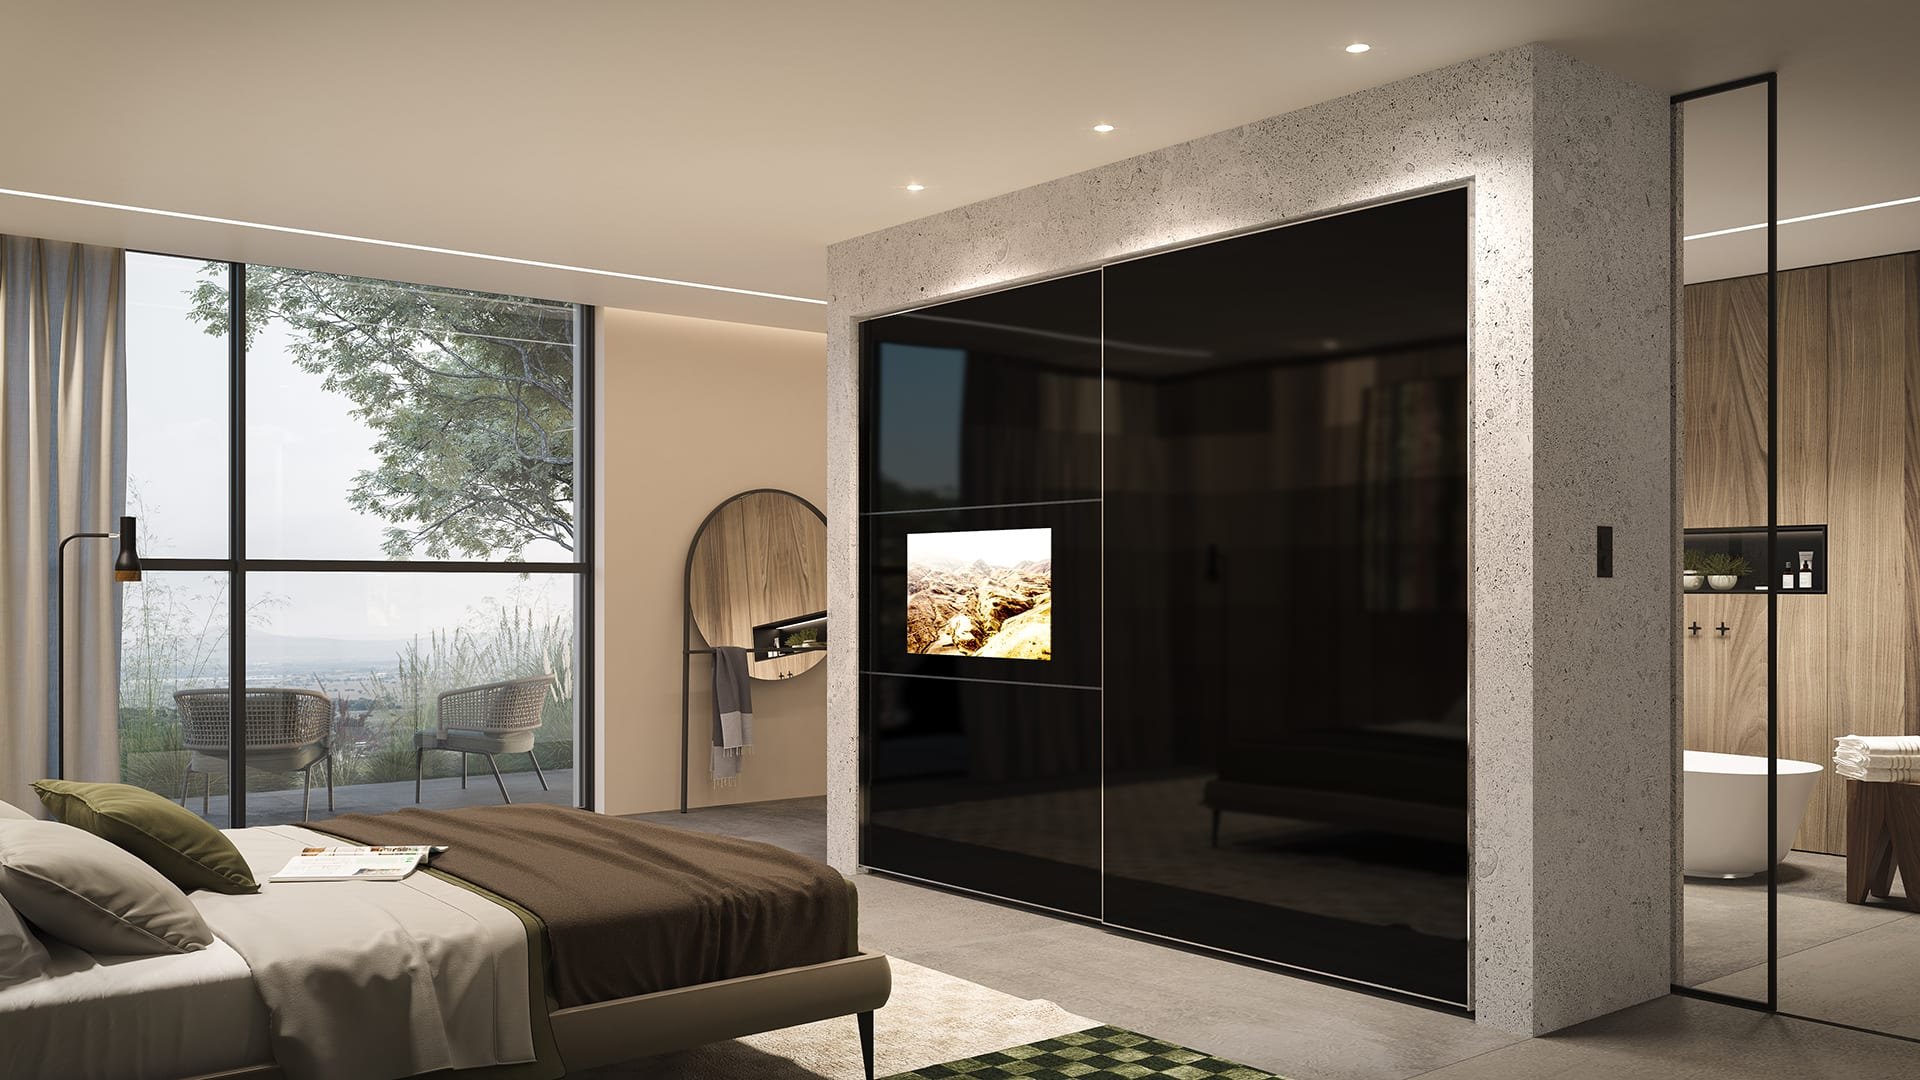 Maayan-Golan_Architectural-Visualization_product-visualization_AGAM-cloests_sliding-door-tv-black-closet_07